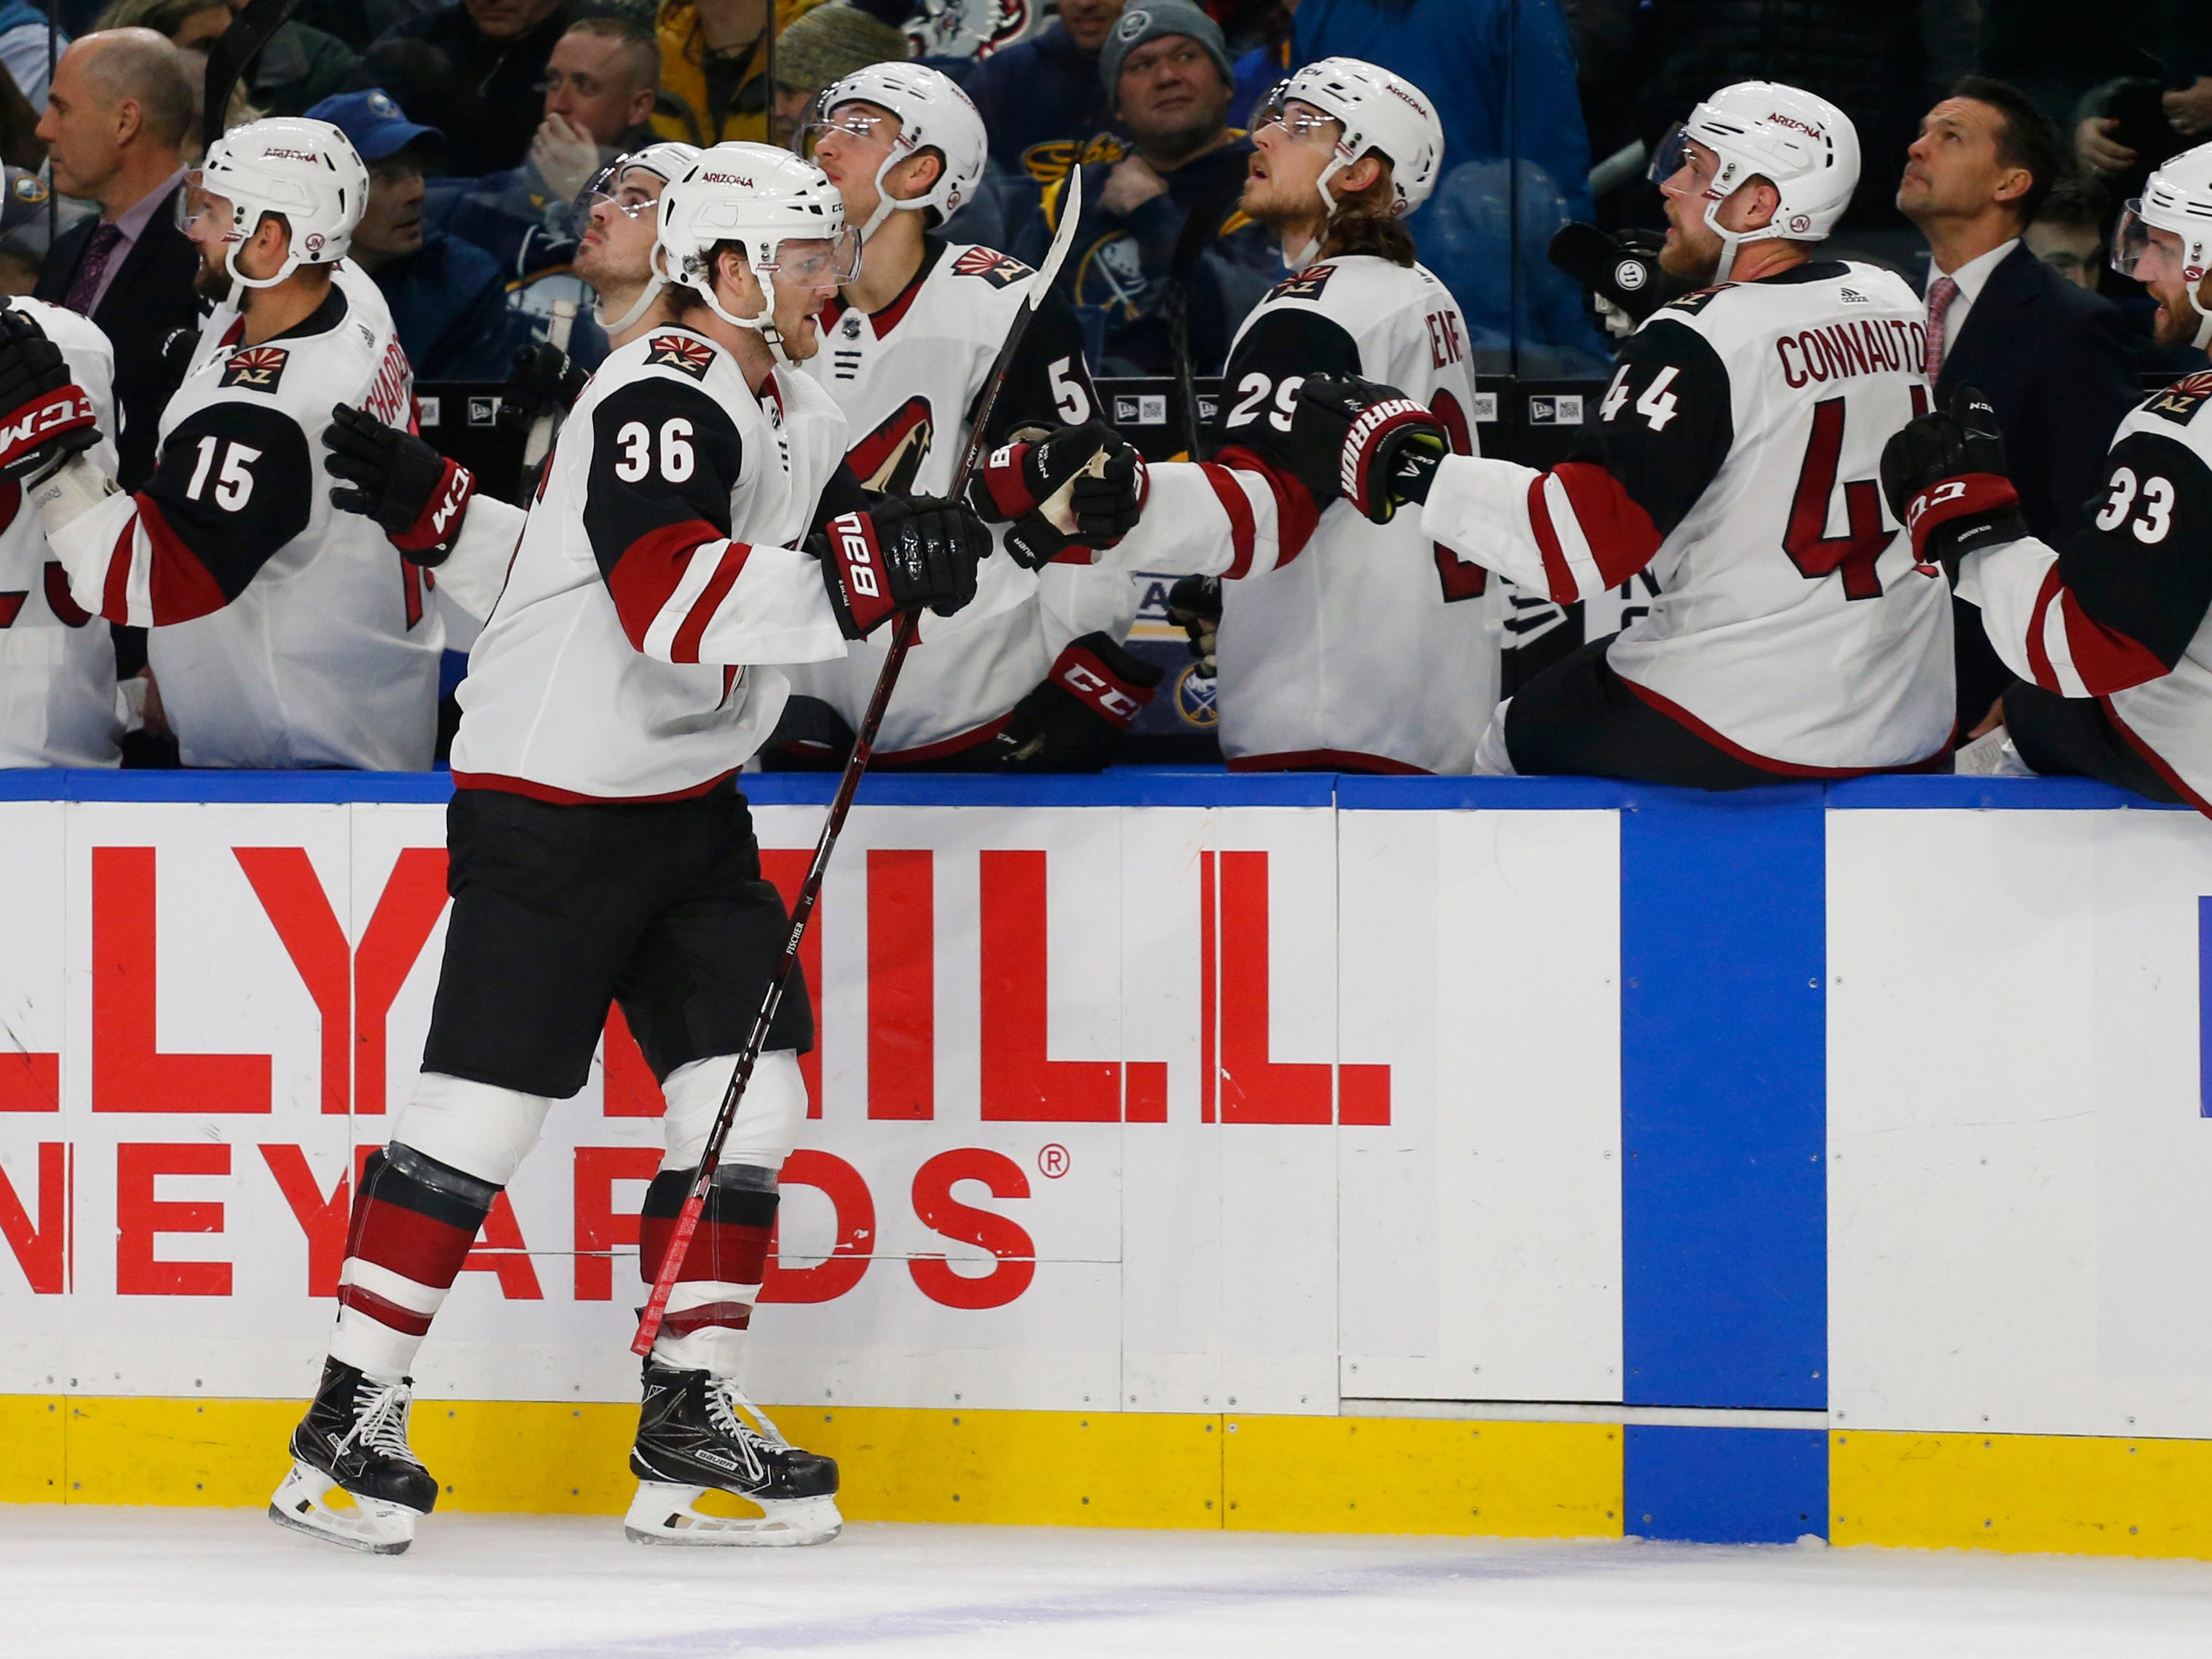 Arizona Coyotes forward Christian Fischer (36) celebrates his goal during the first period of an NHL hockey game against the Buffalo Sabres, Thursday, Dec. 13, 2018, in Buffalo N.Y. (AP Photo/Jeffrey T. Barnes)